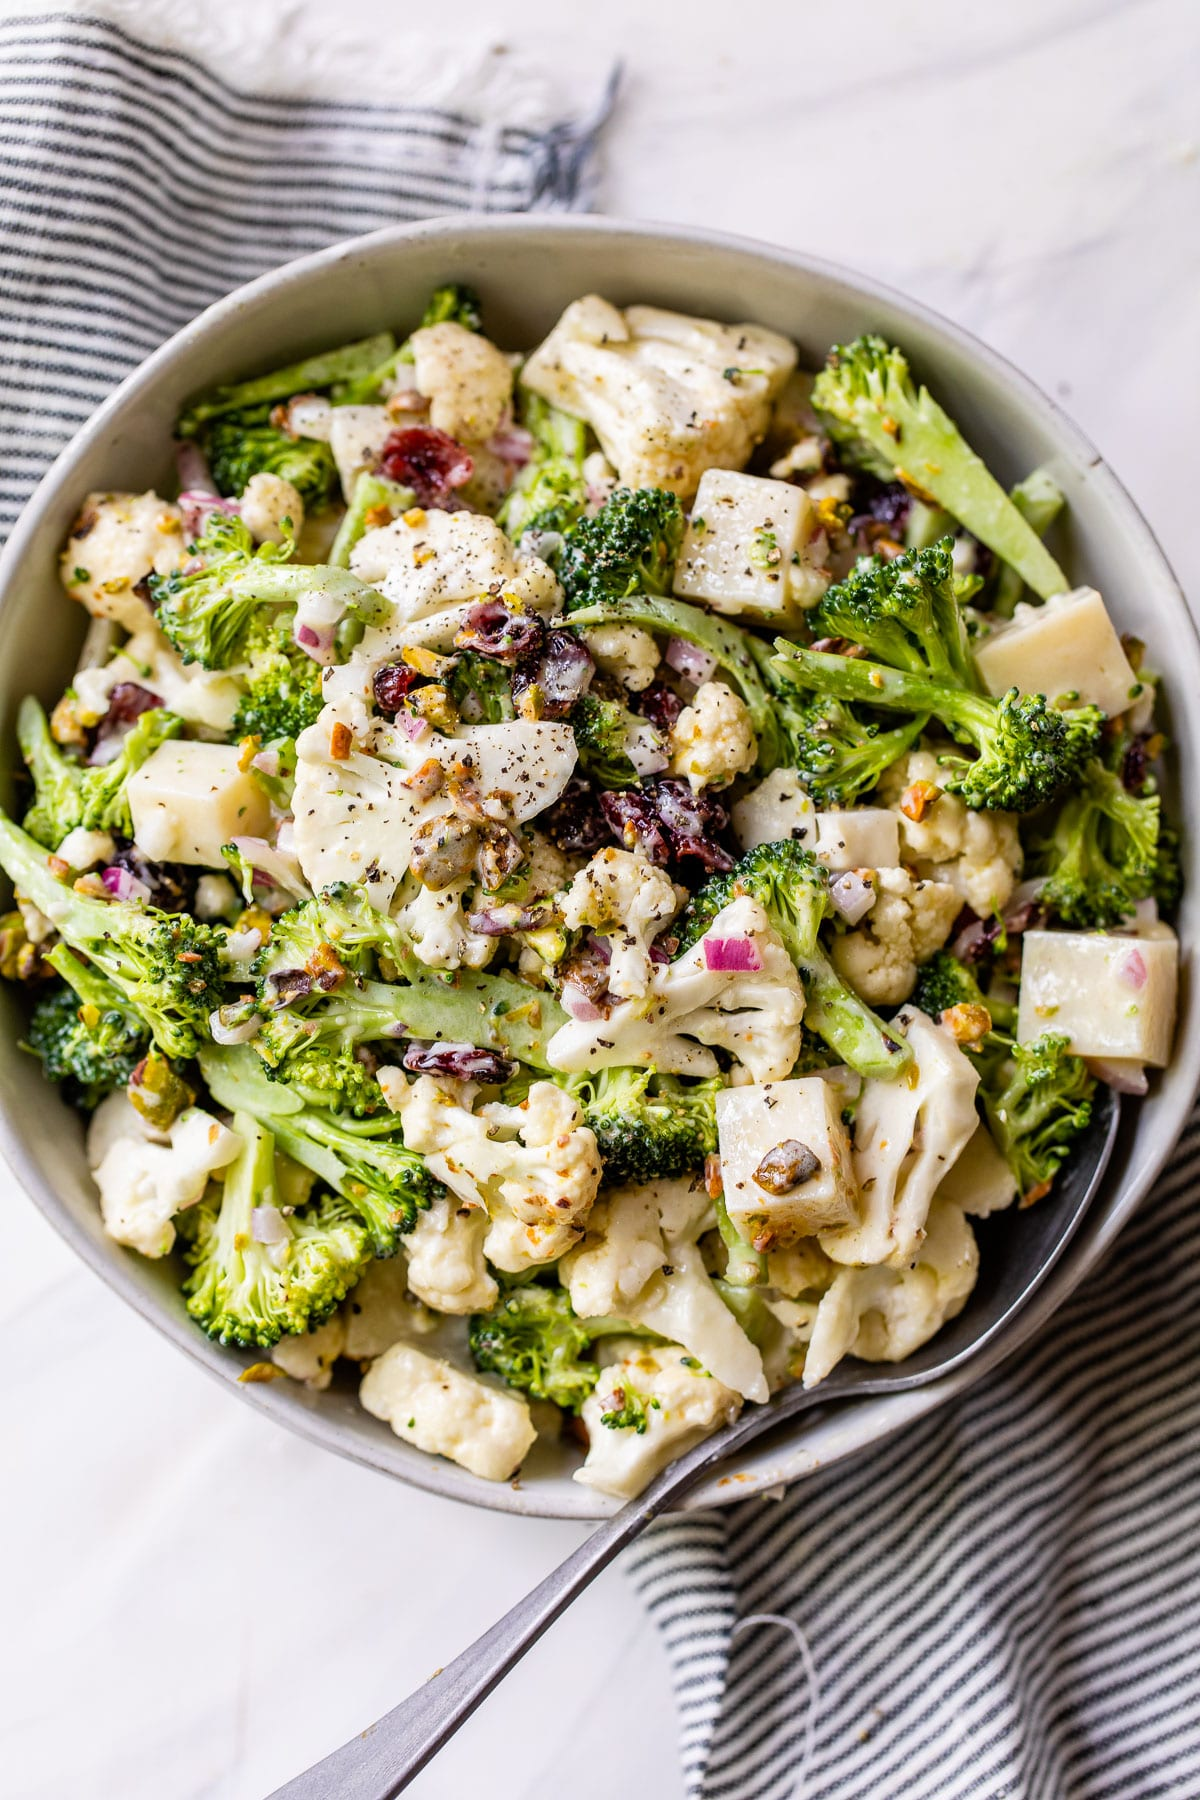 a large bowl filled with broccoli, cauliflower, cheese, and dried cranberries on top of a striped linen